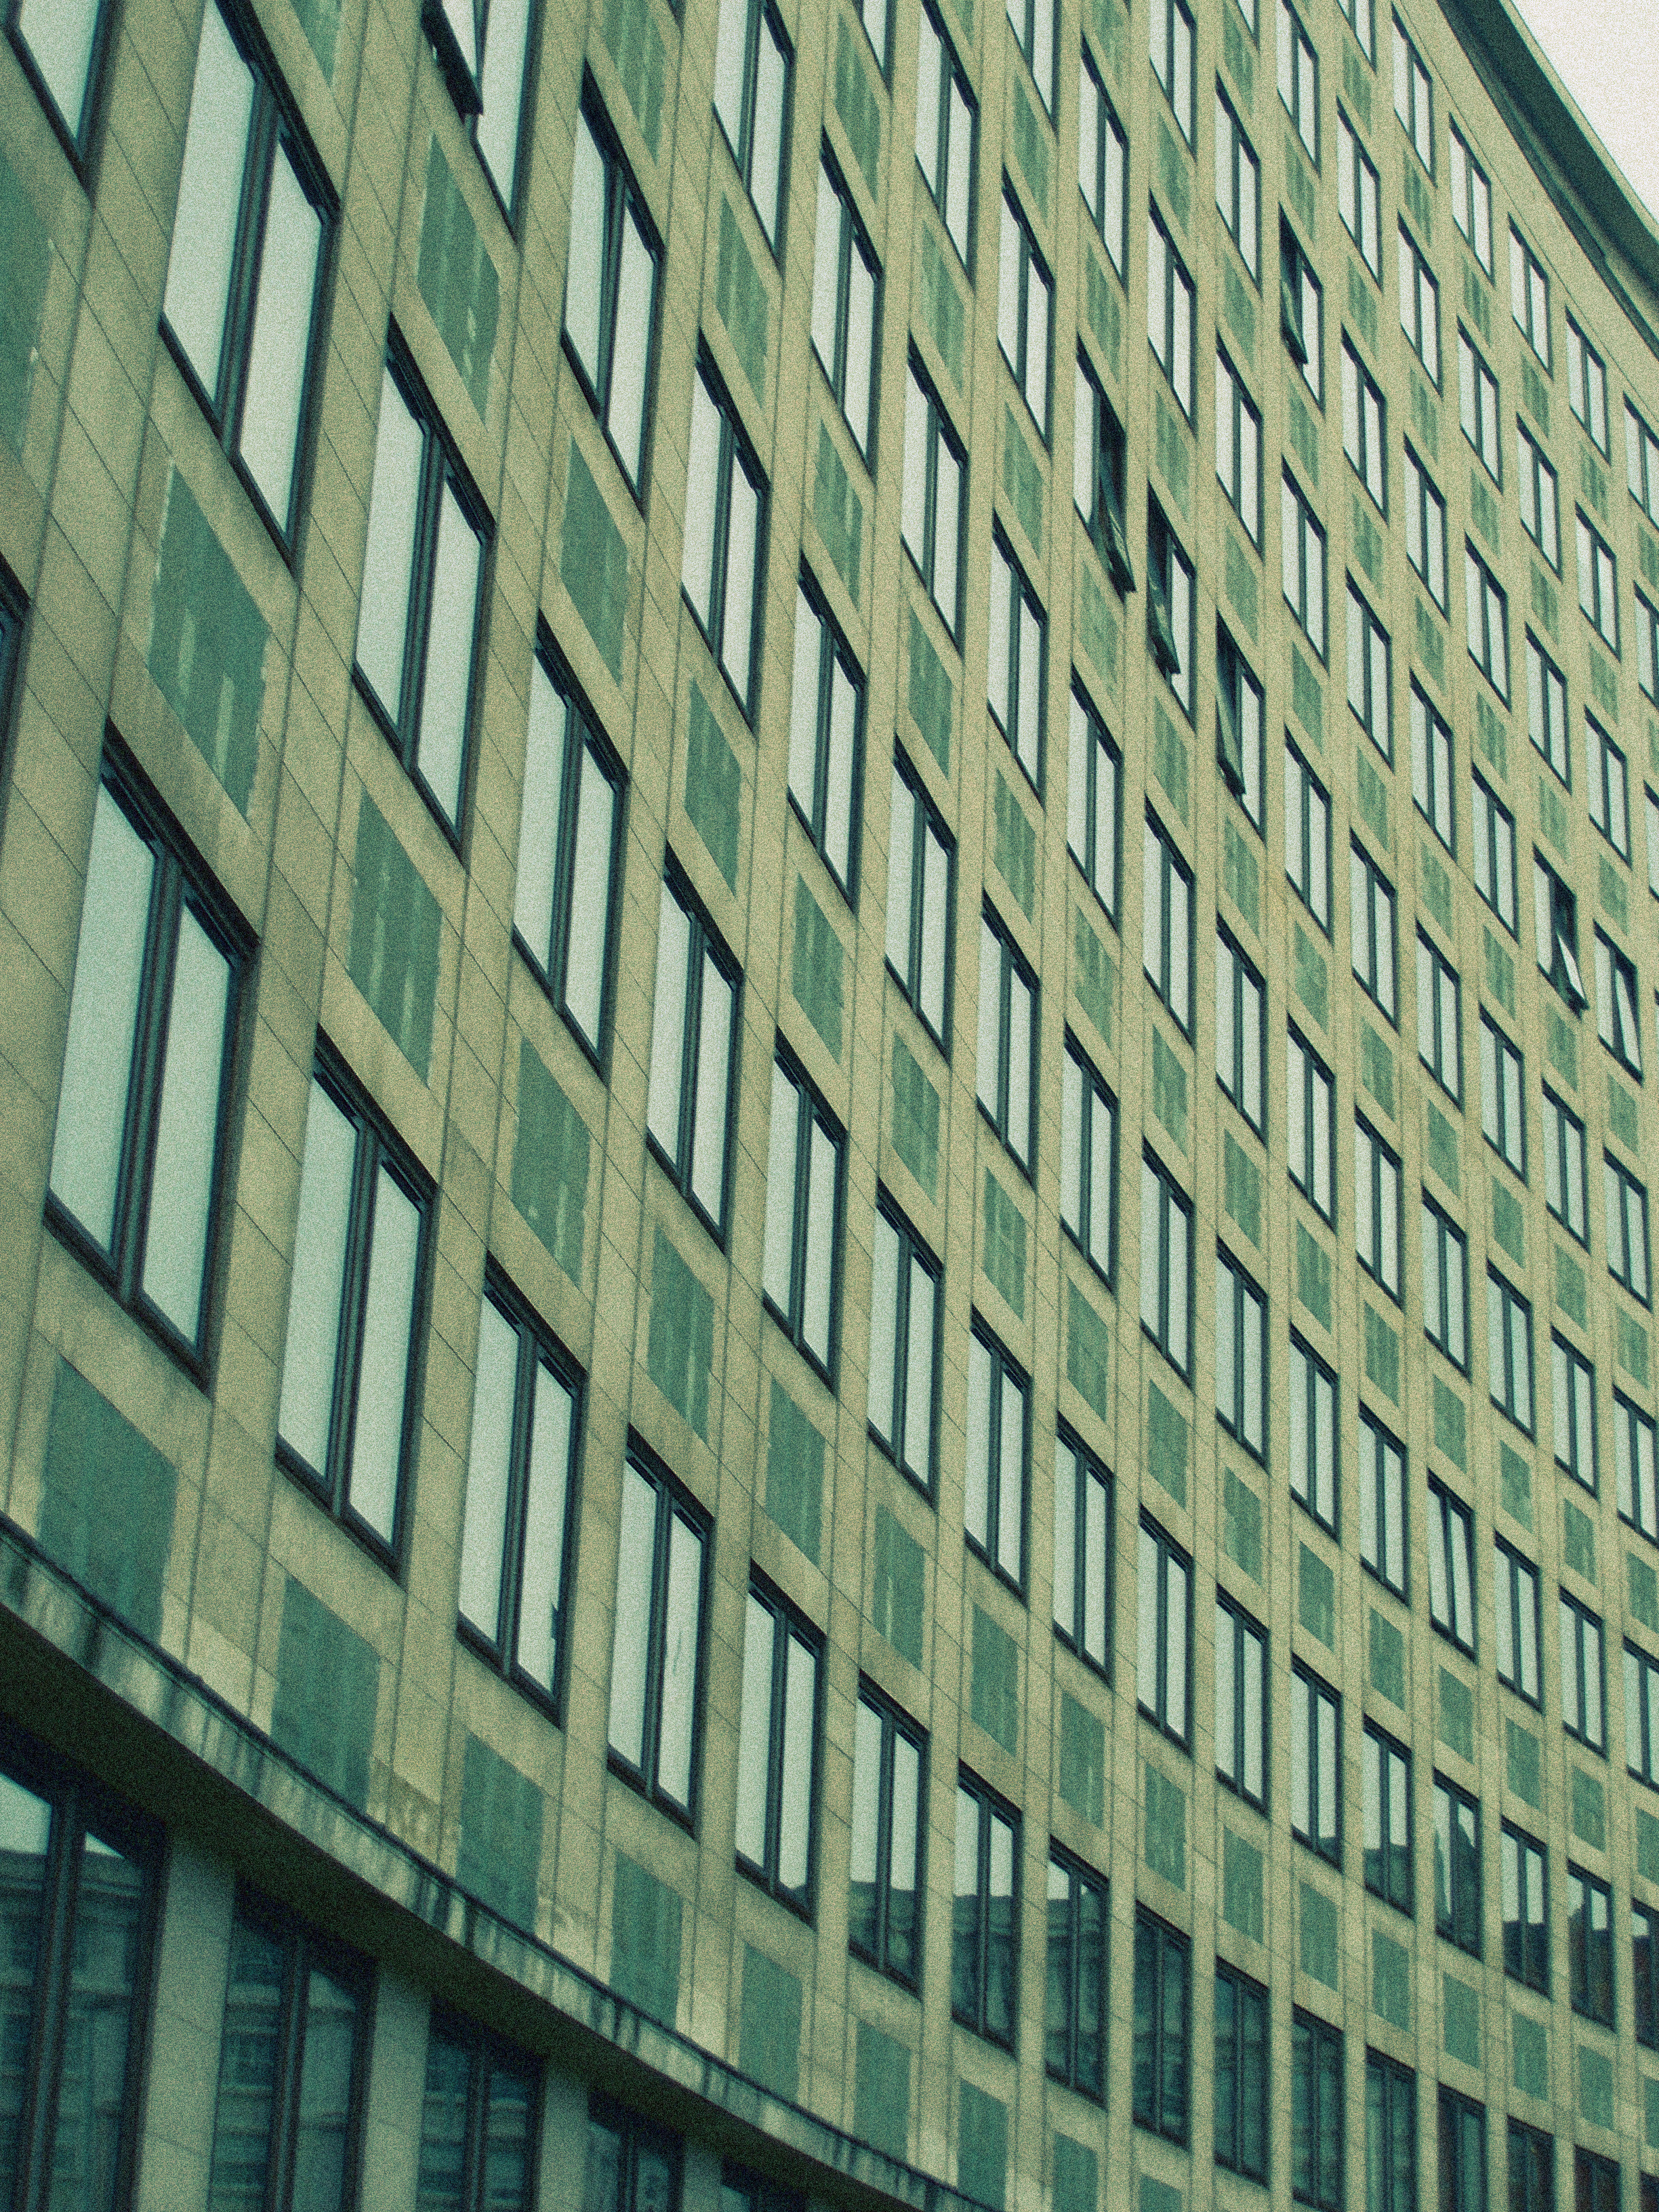 tower block facade grainy cross processed effect